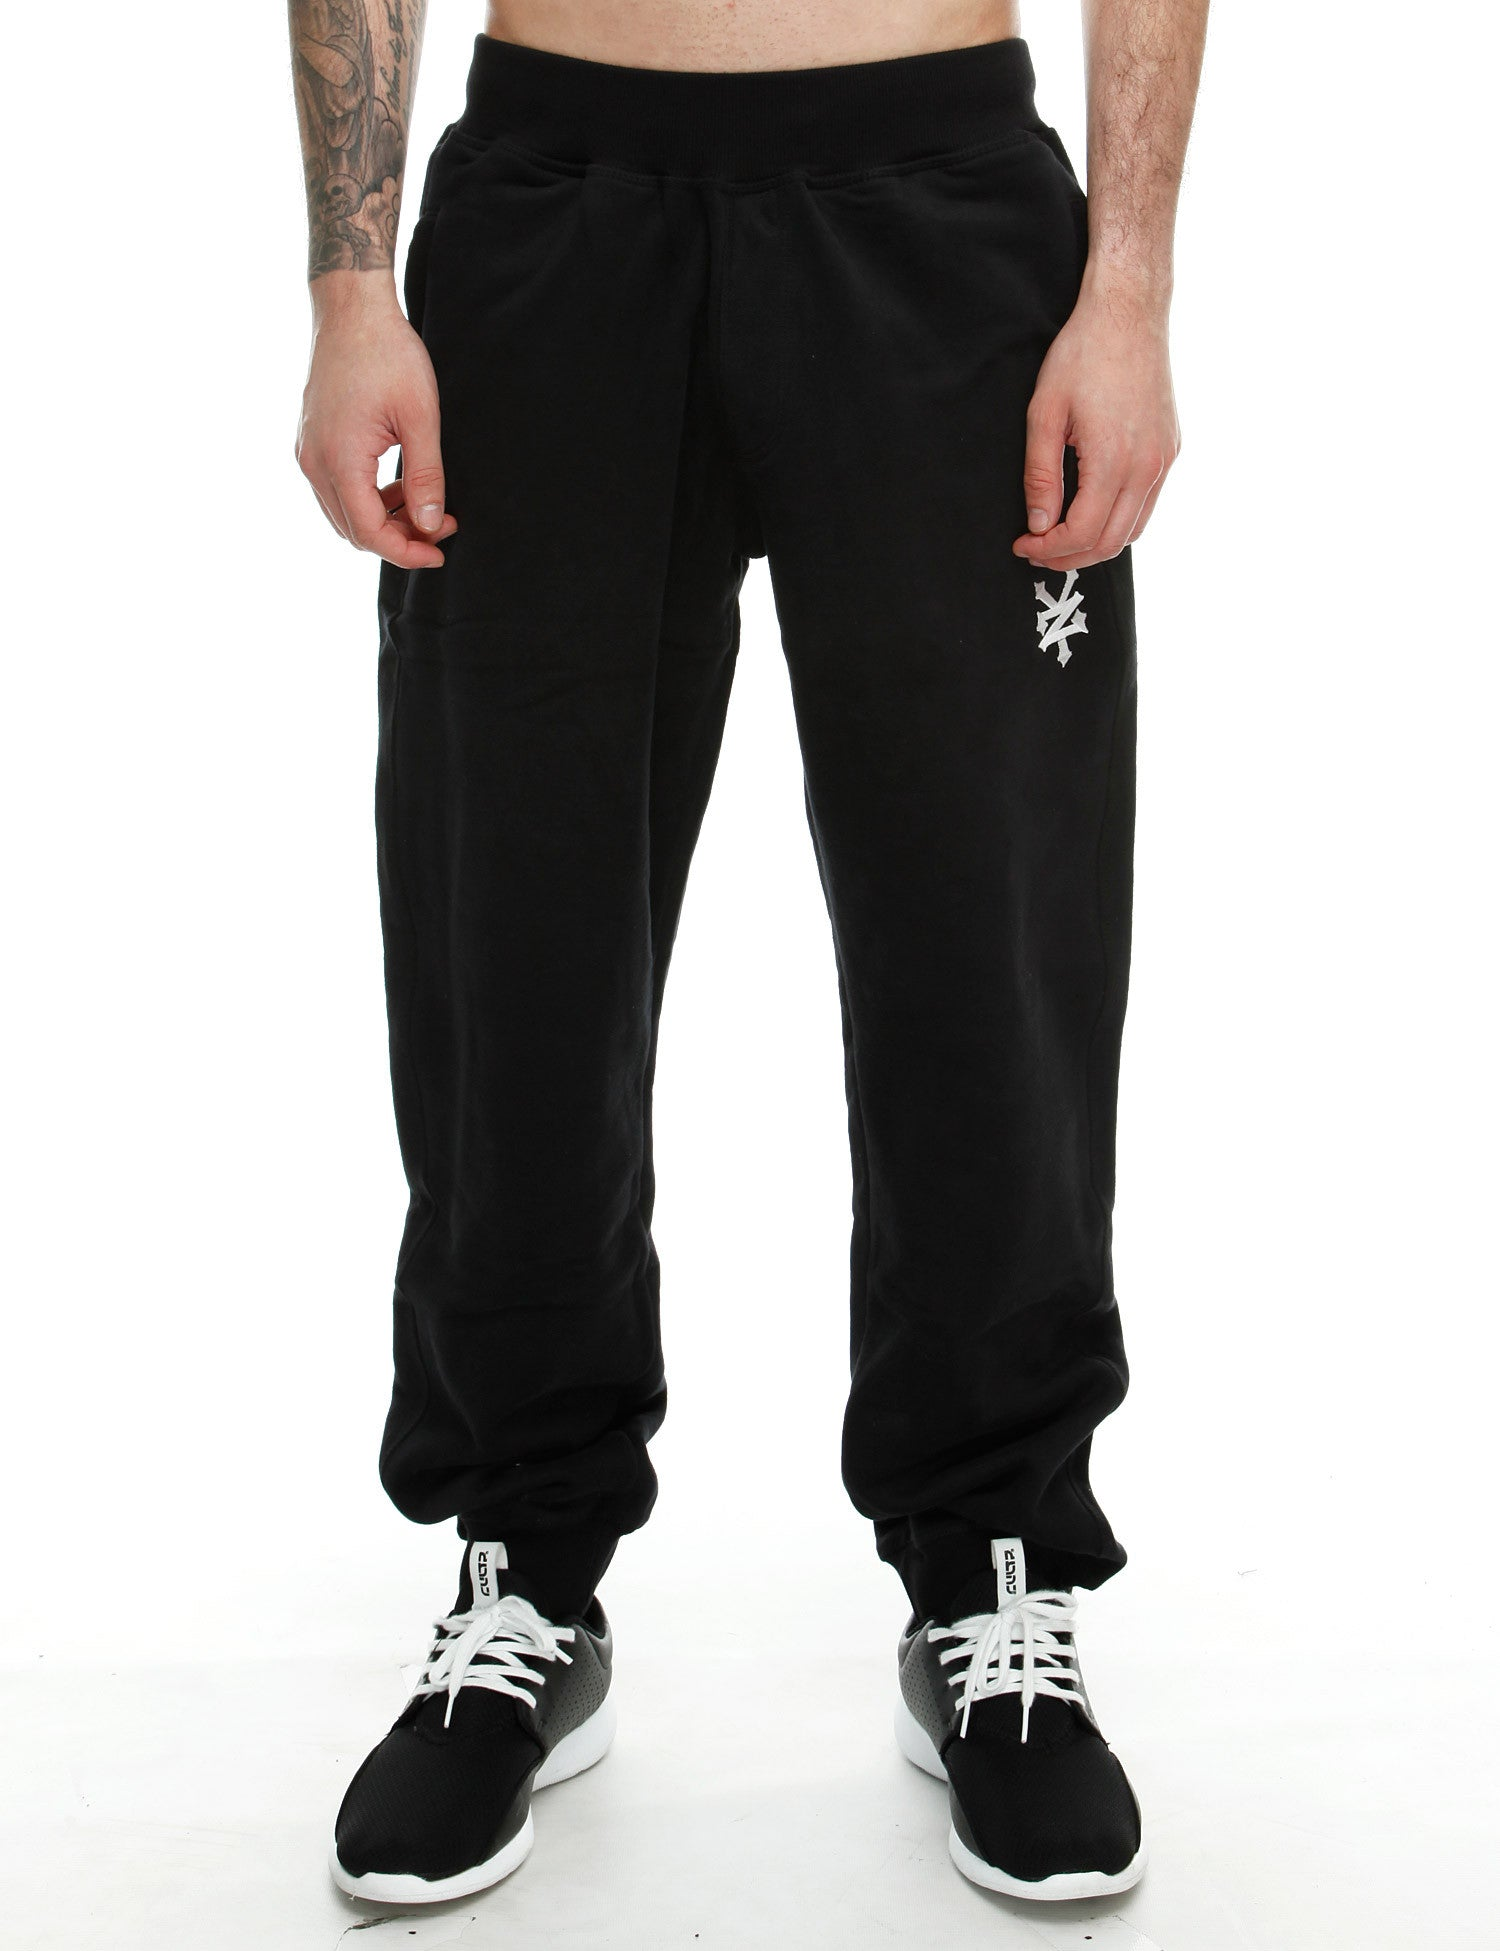 Zoo York Rutgers Sweatpant Z7N00077 Anthracite Black